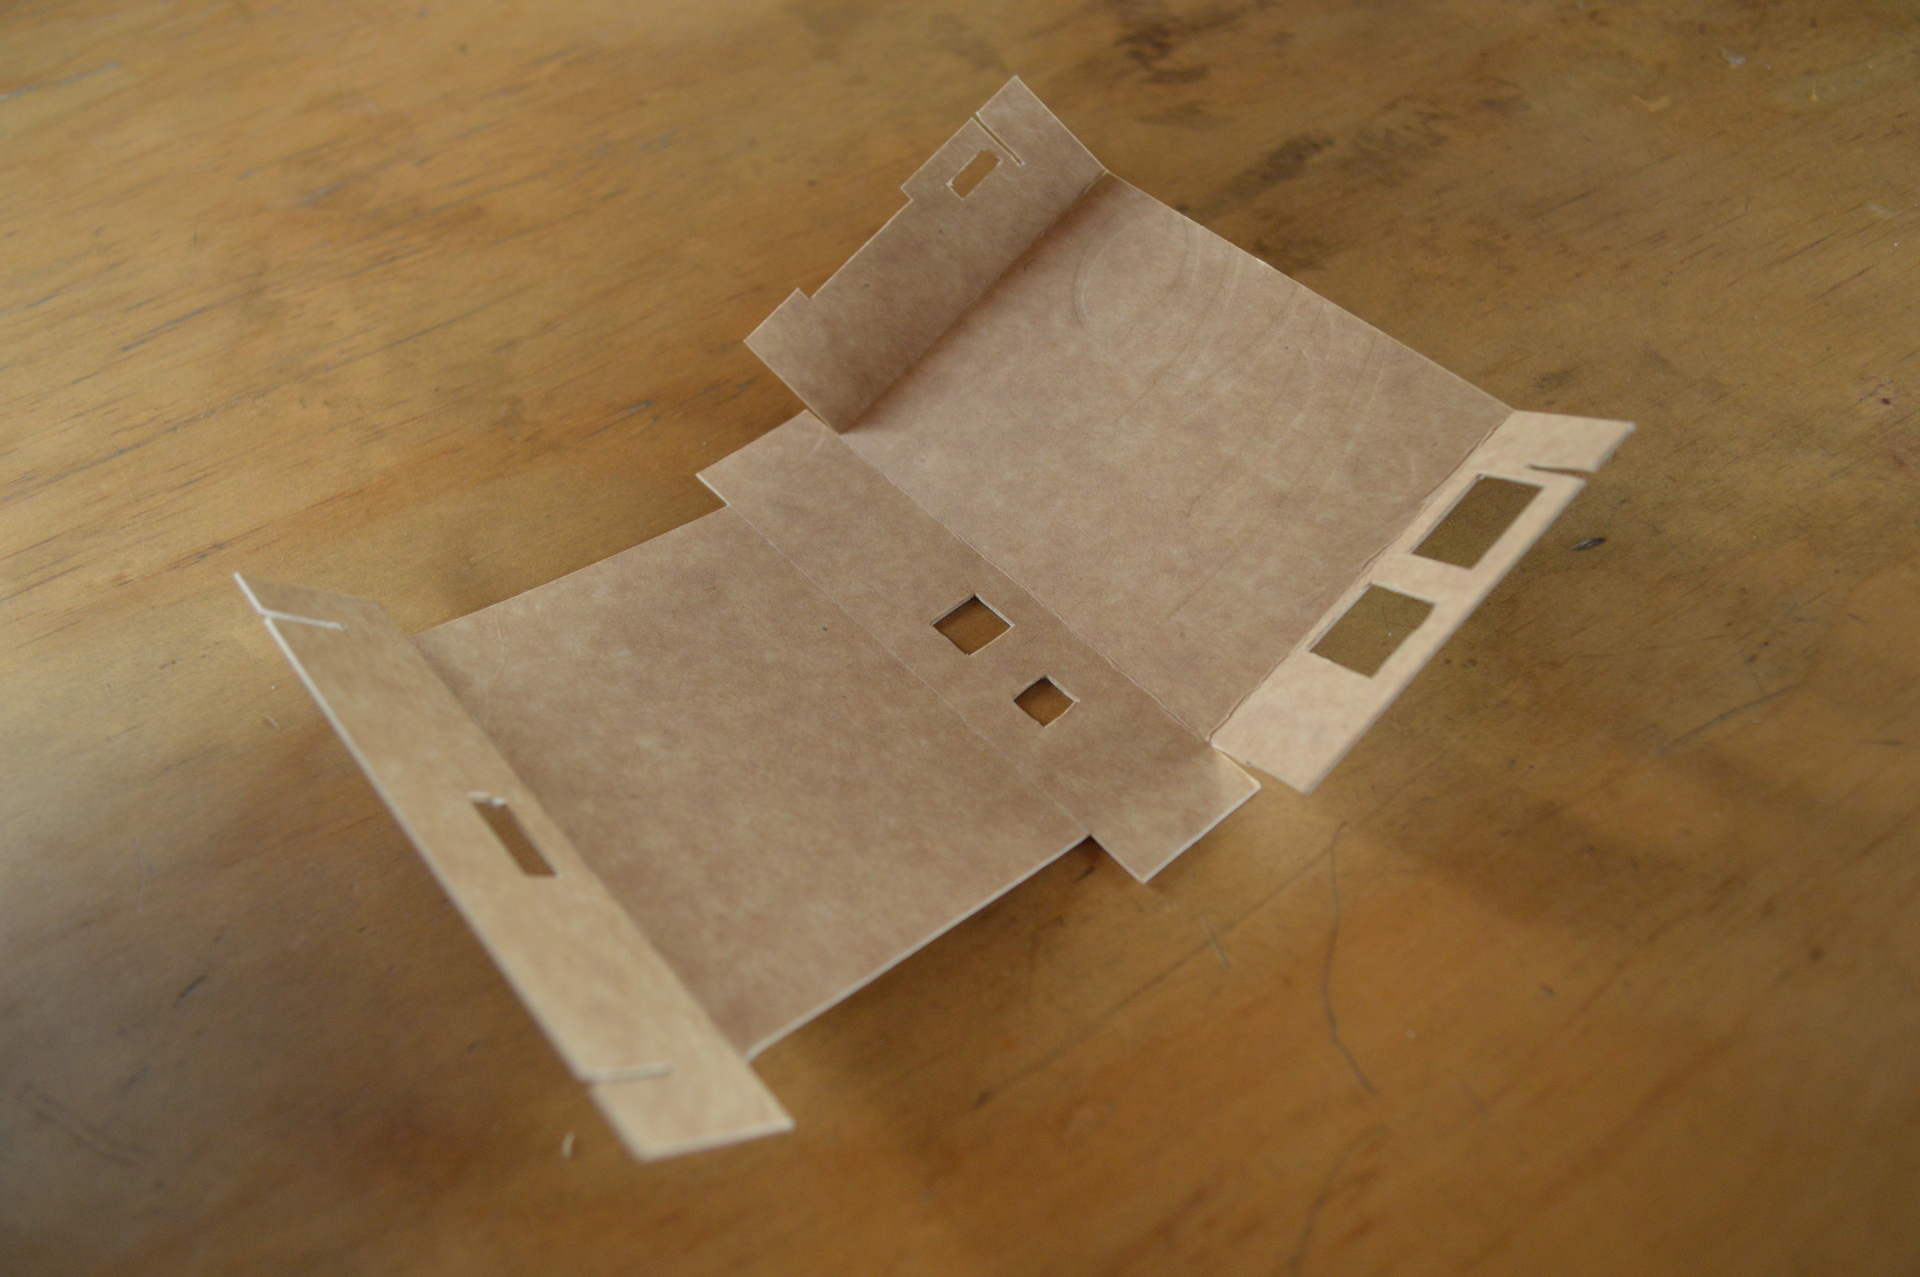 Image of the unfolded box